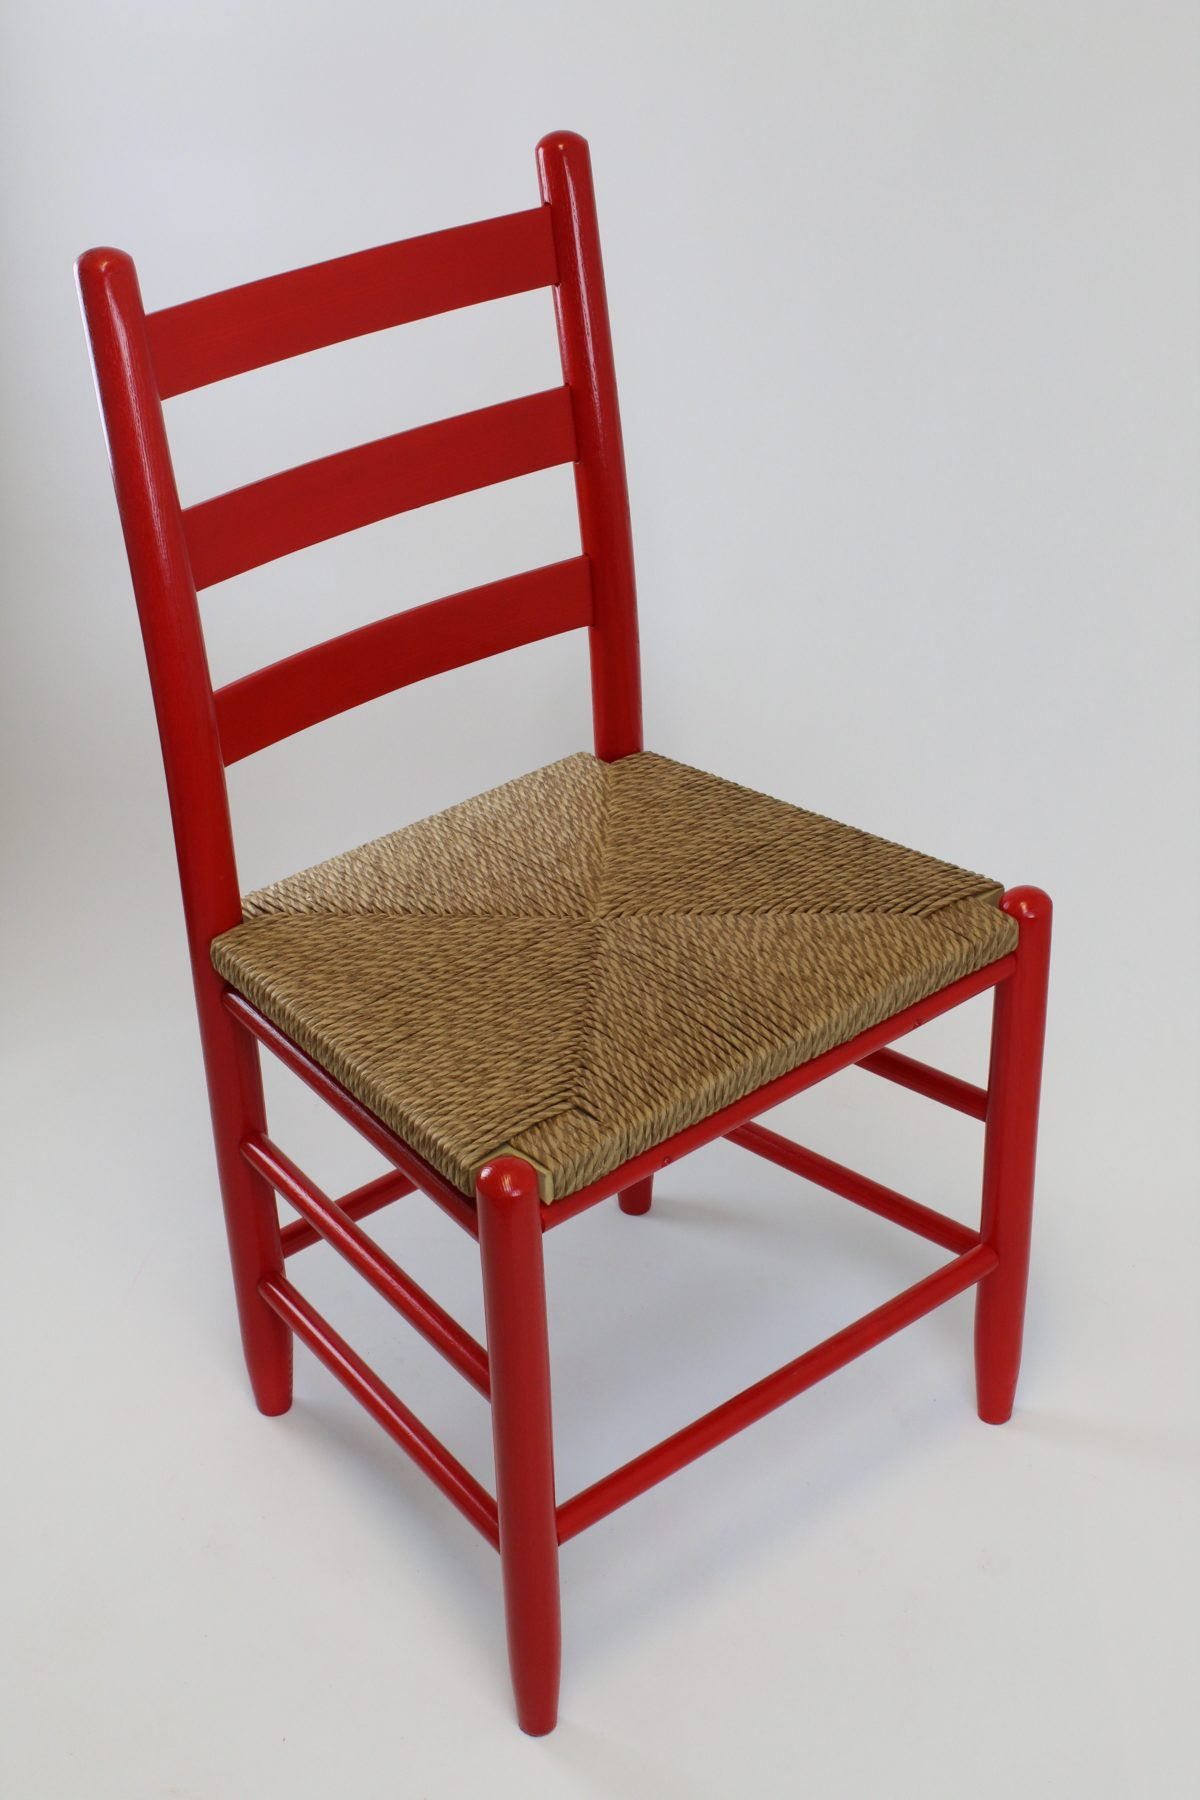 American Made Twisted Paper Seat - an alternative to the Grass Rush Seat. | www.dixieseating.com